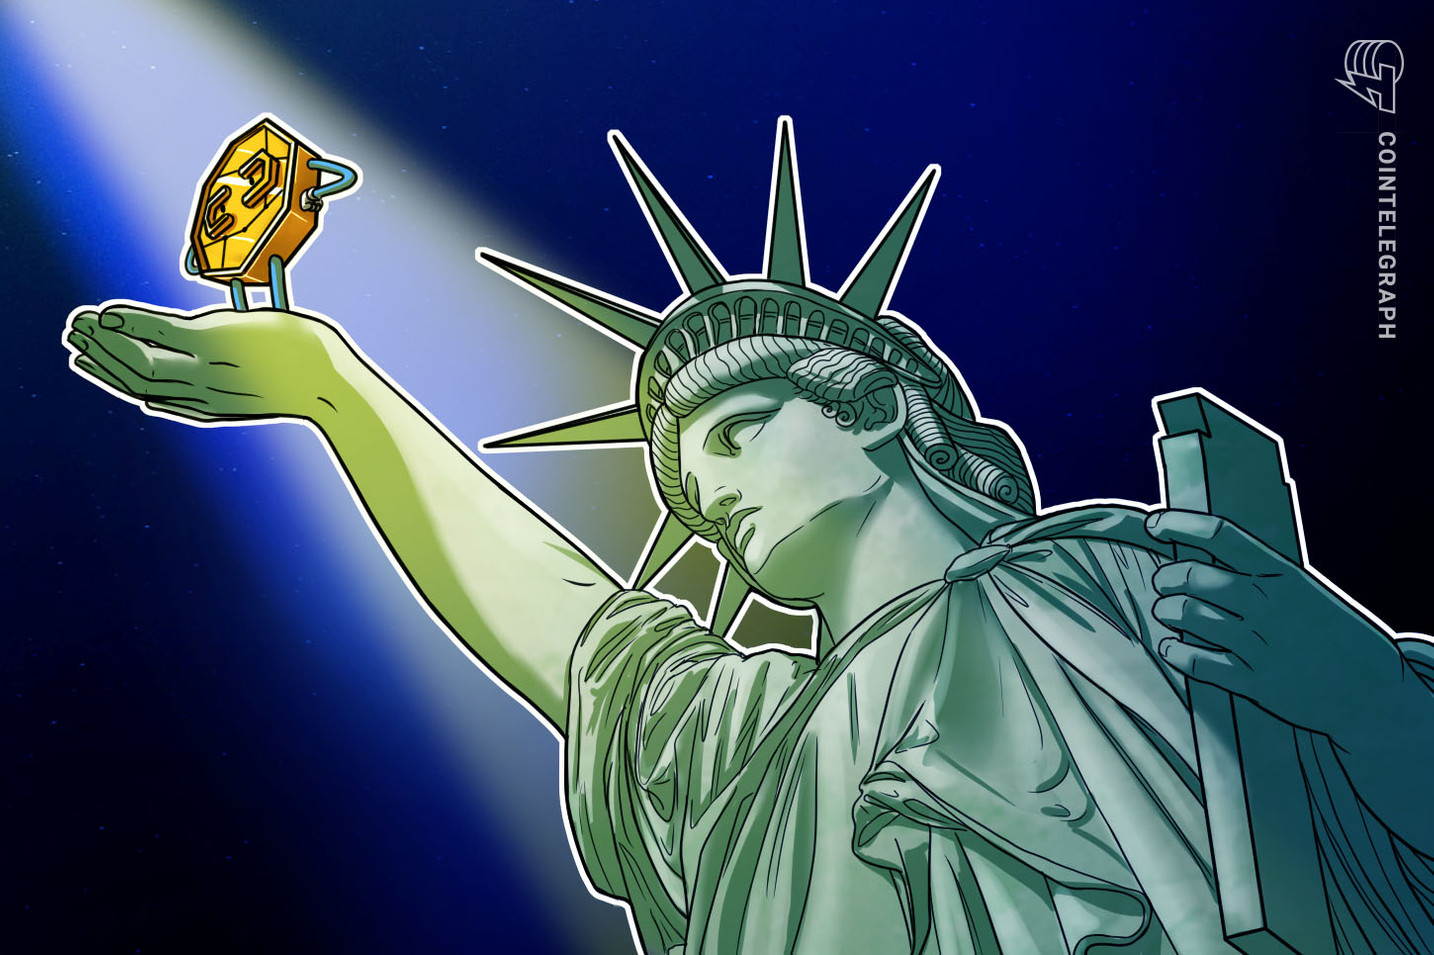 US Congressman Challenges Fed Chair on Threat of China's Digital Currency